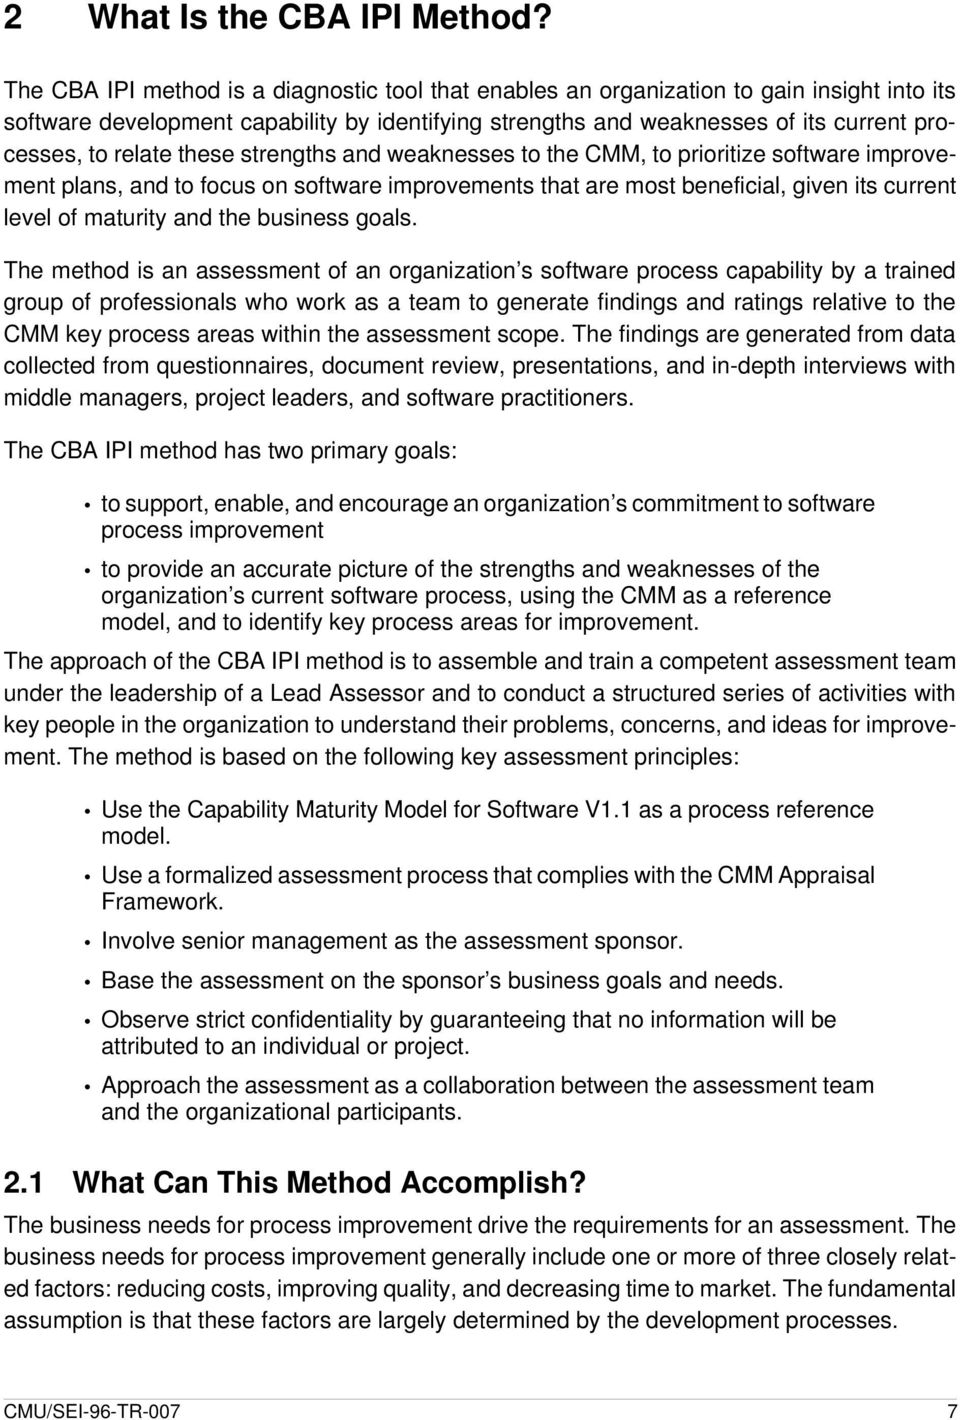 relate these strengths and weaknesses to the CMM, to prioritize software improvement plans, and to focus on software improvements that are most beneficial, given its current level of maturity and the